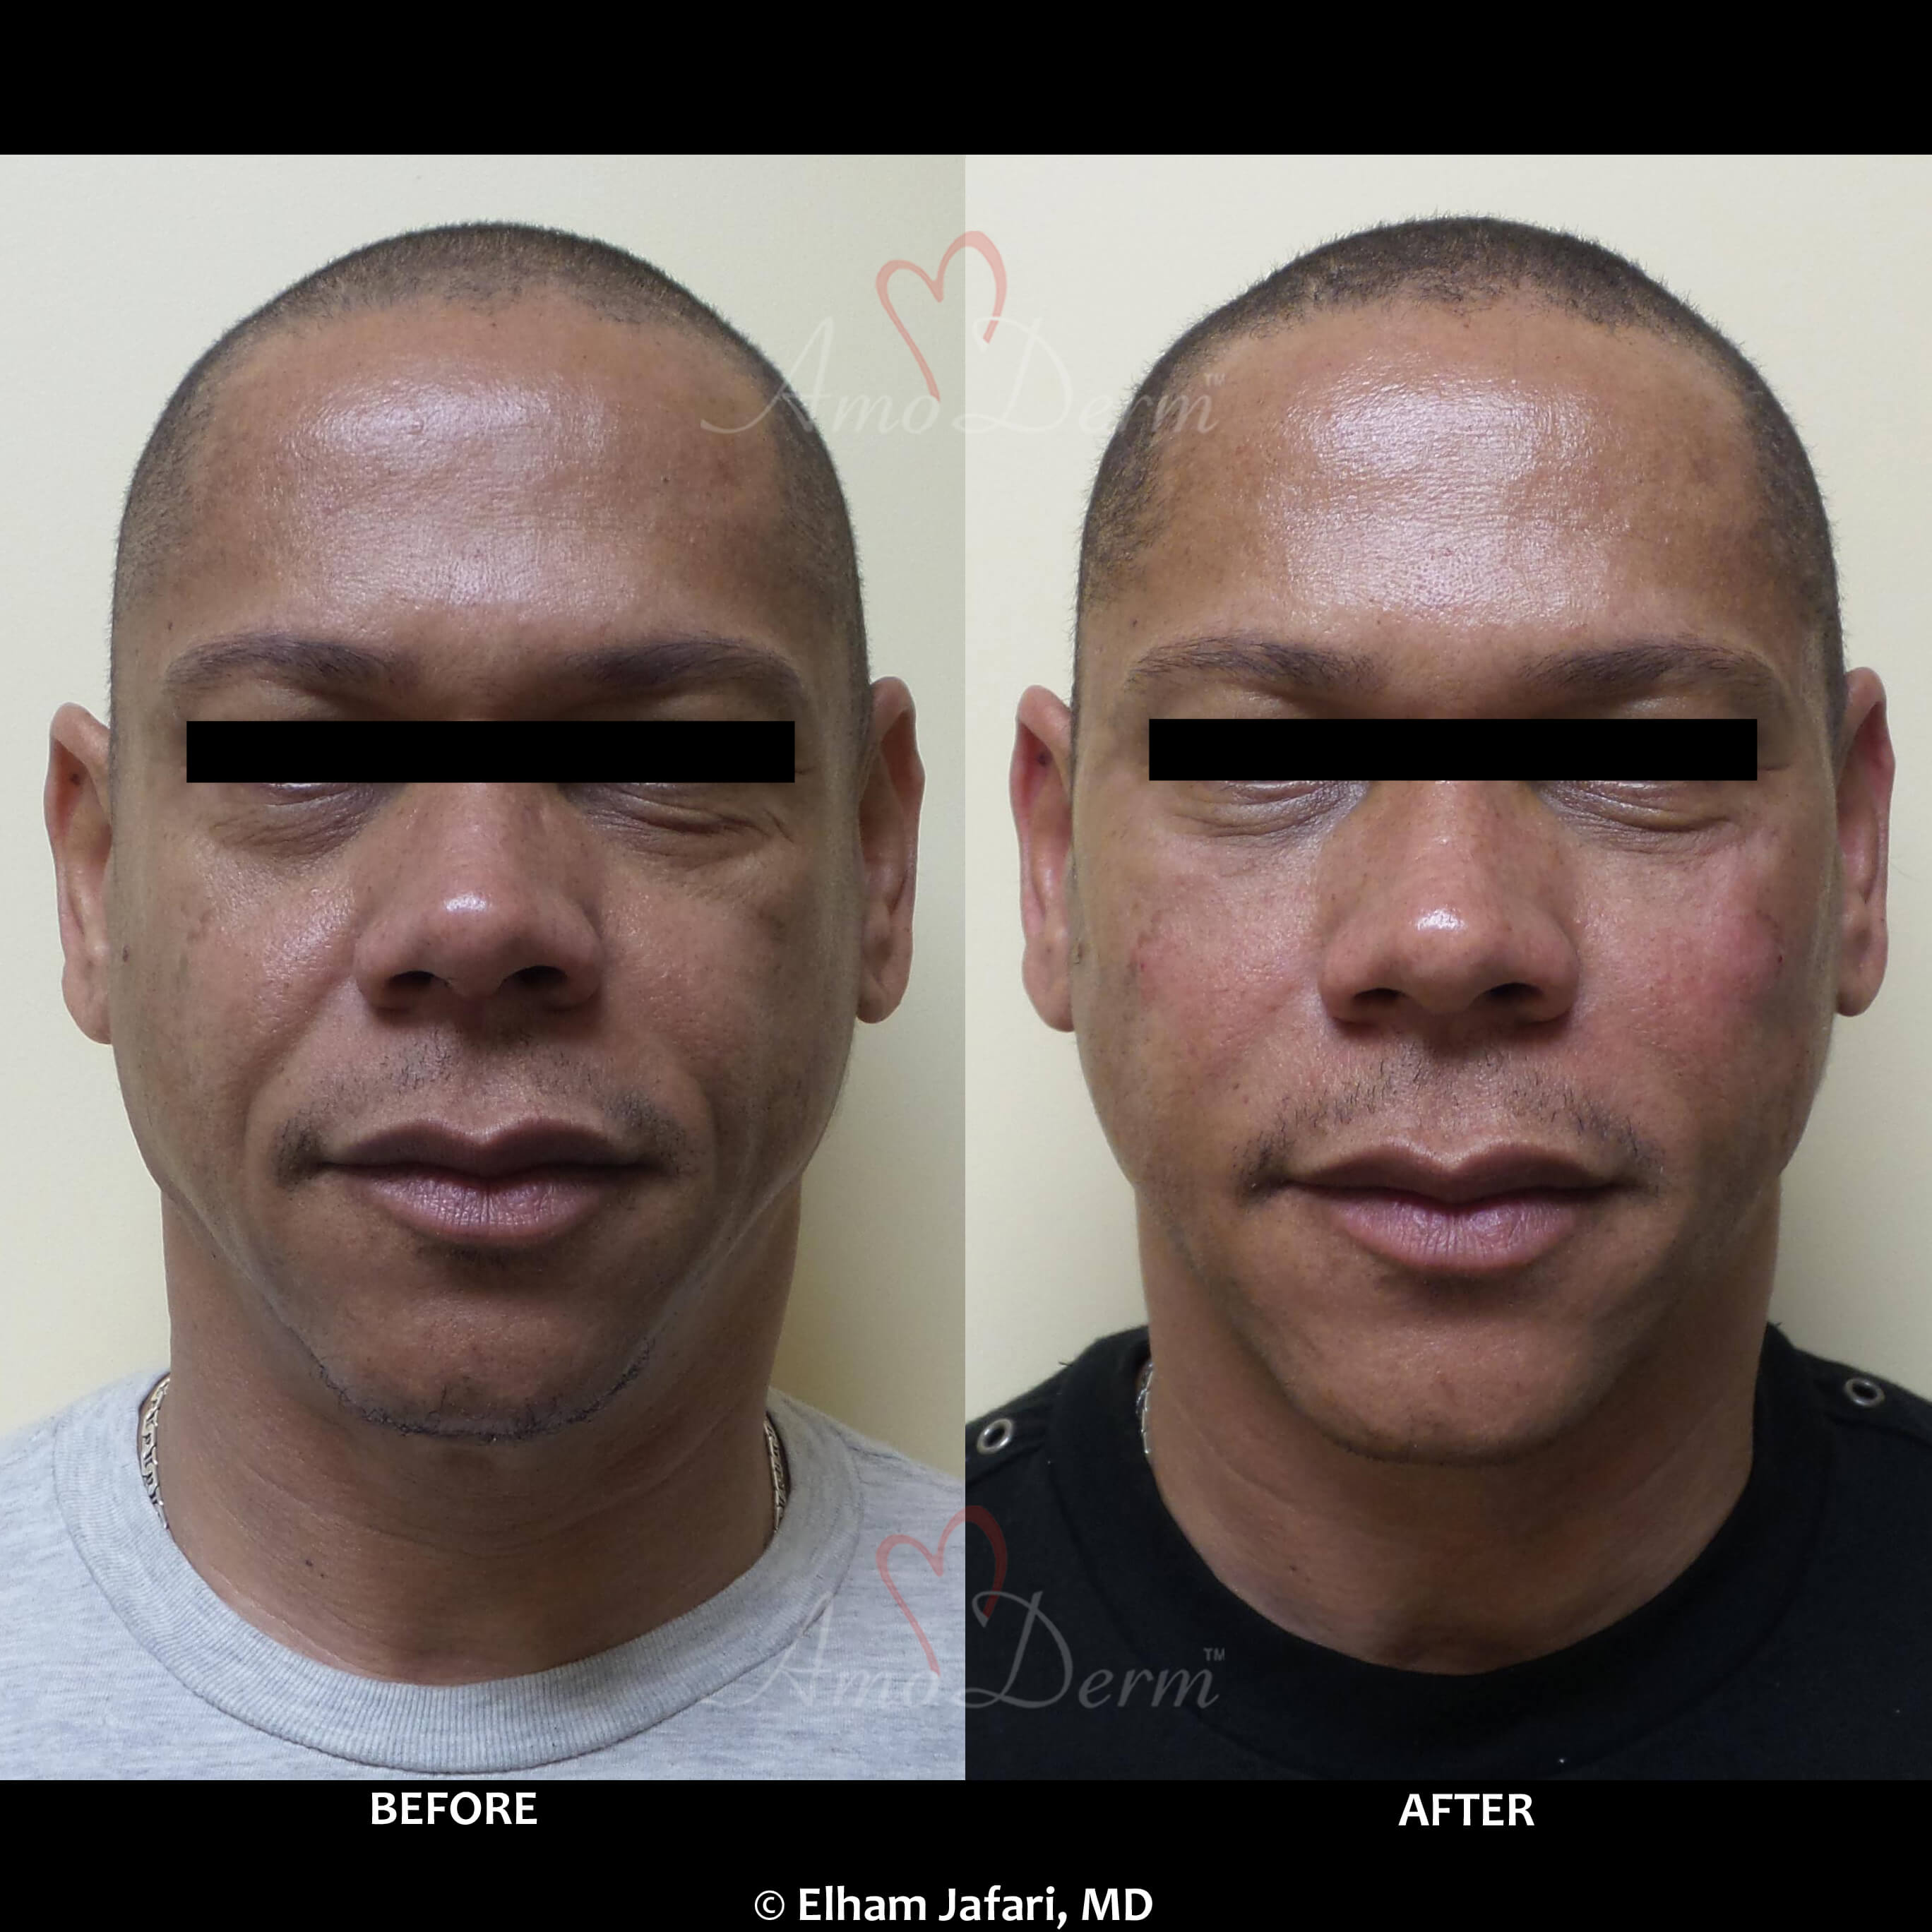 Nasolabial Folds - Common Concerns known as smile lines or